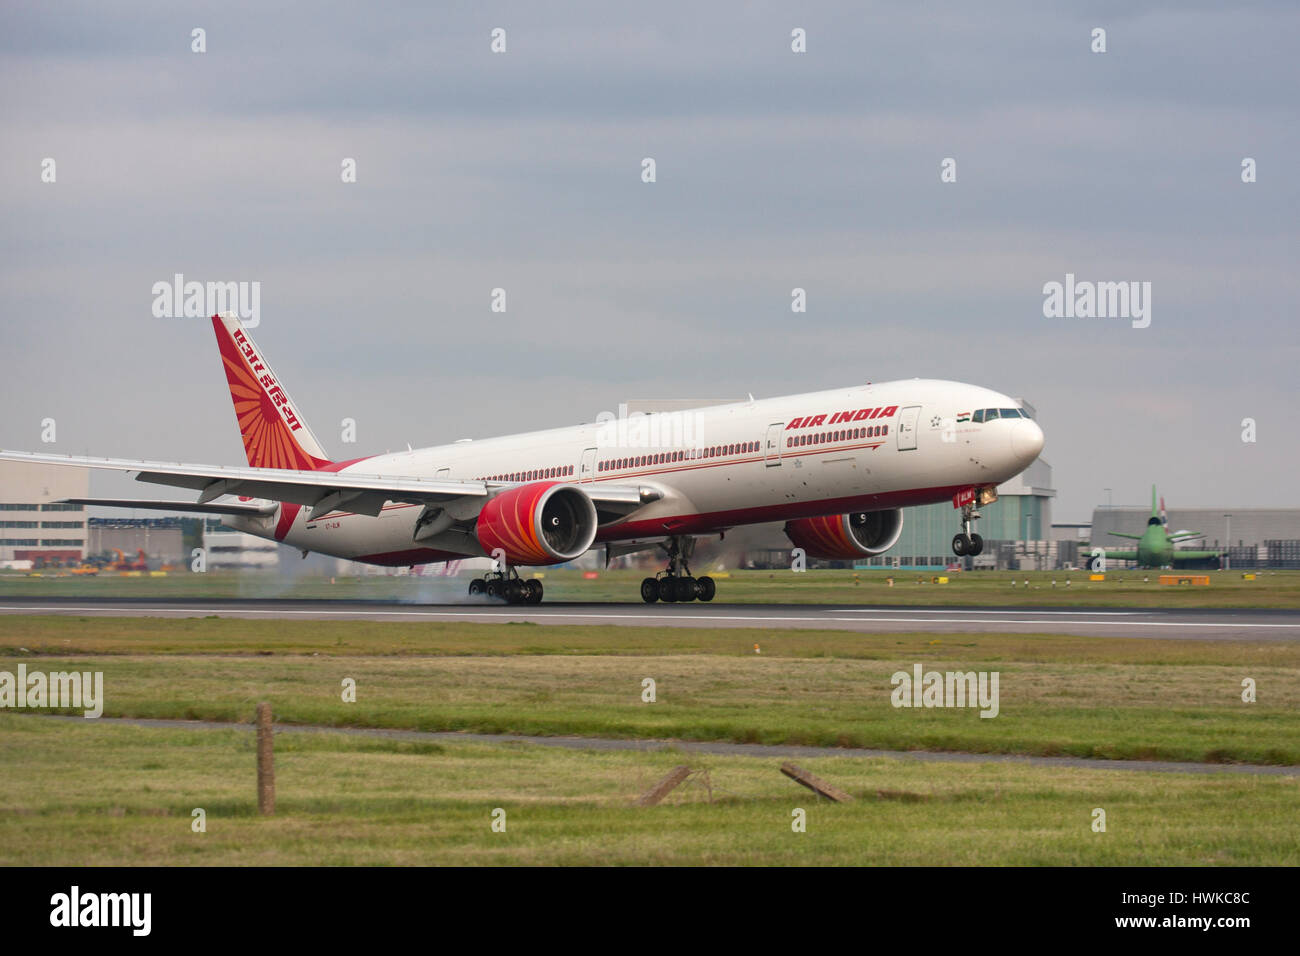 Air India Boeing 777 touching down at London Heathrow Airport, UK - Stock Image